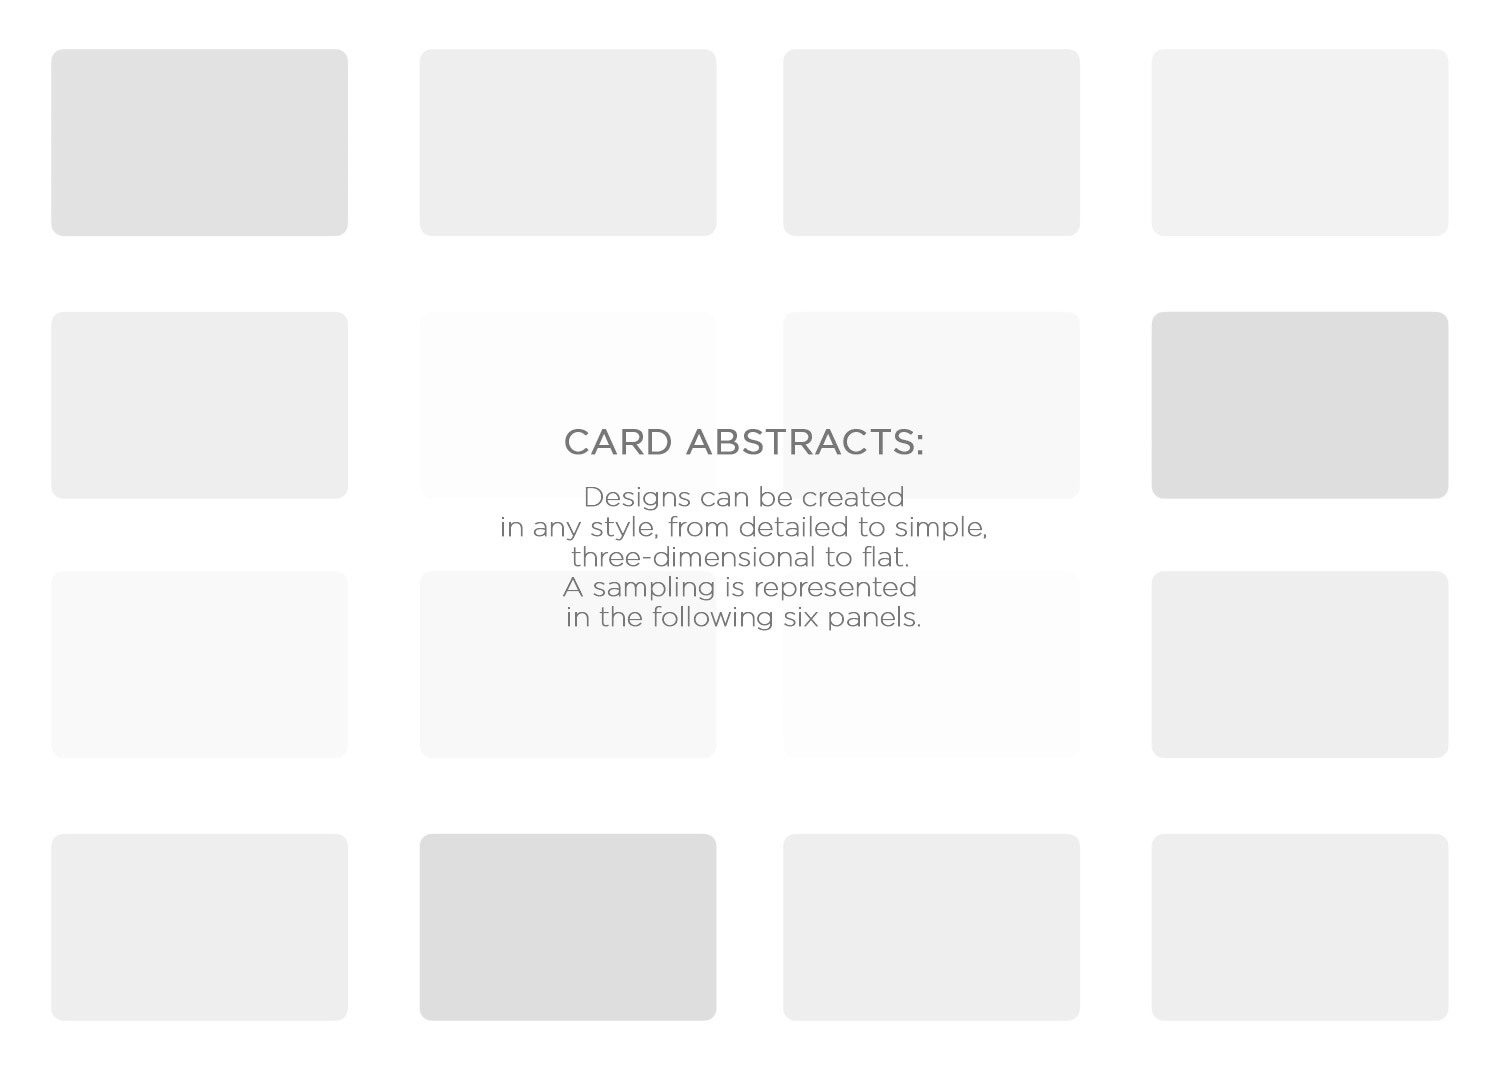 card abstracts